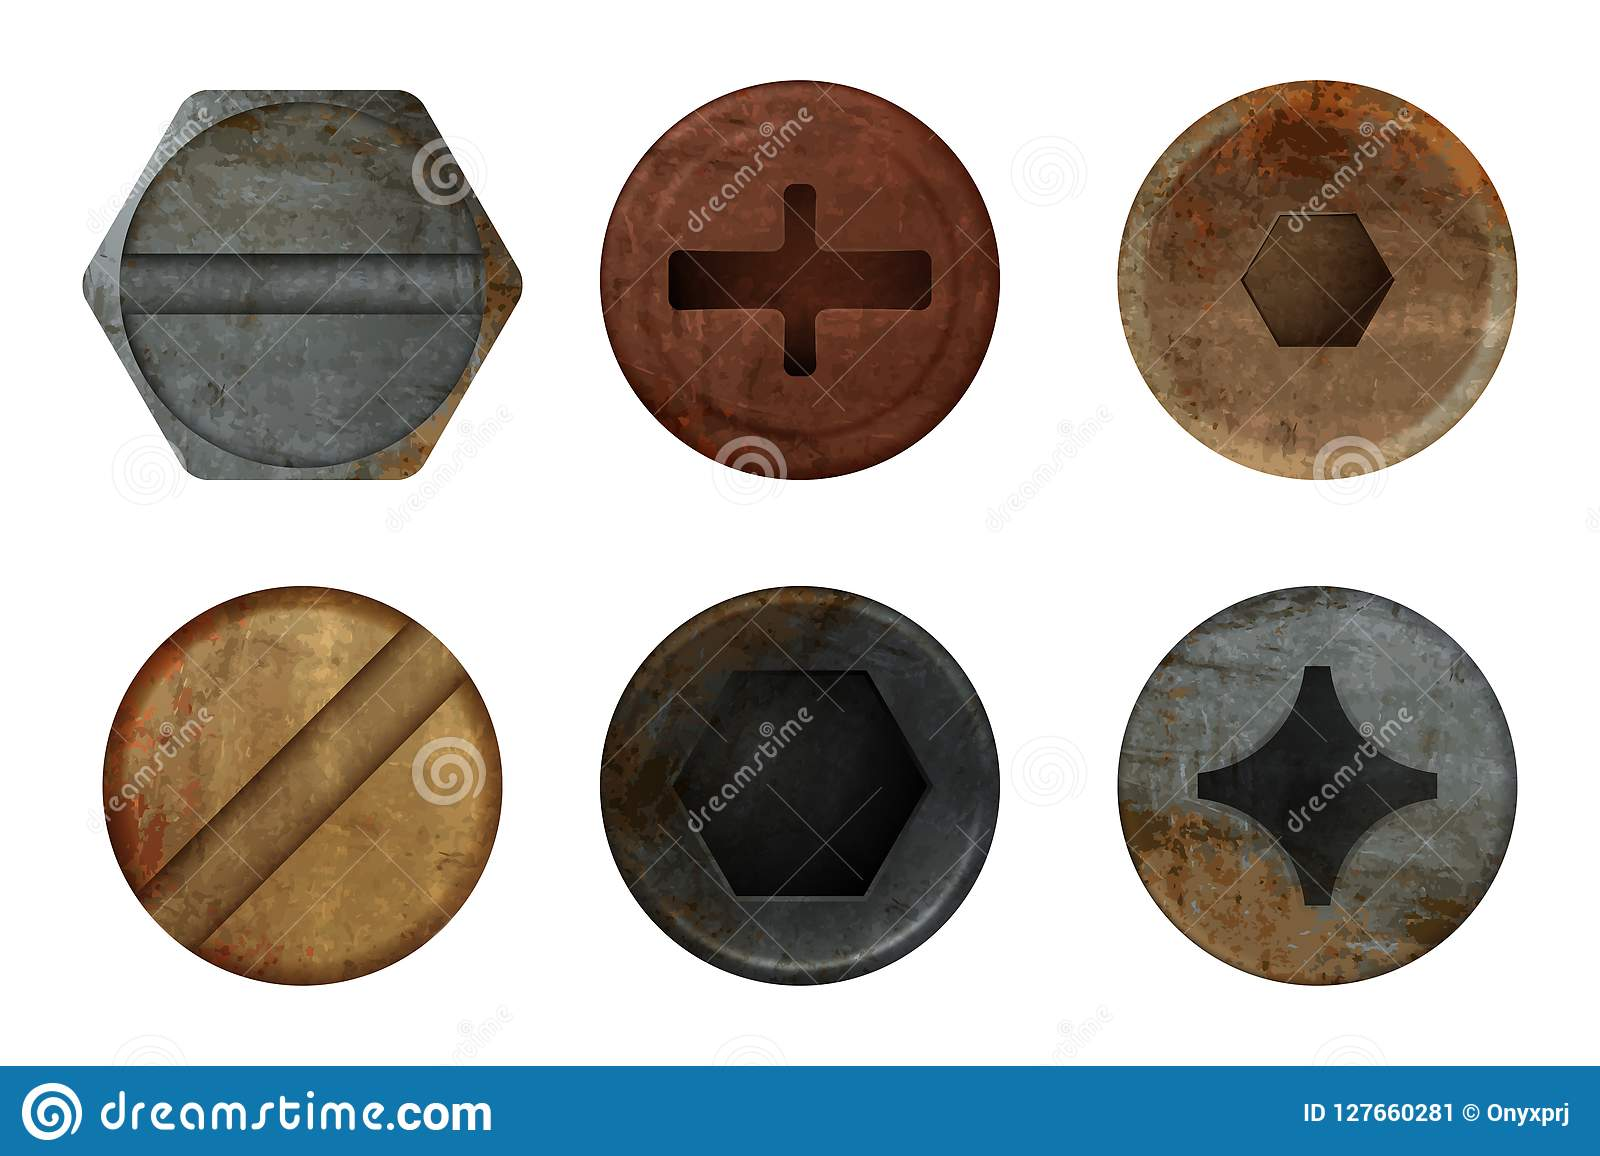 Old rusty bolts screw. Hardware rust metal texture for different iron tools. Vector realistic pictures